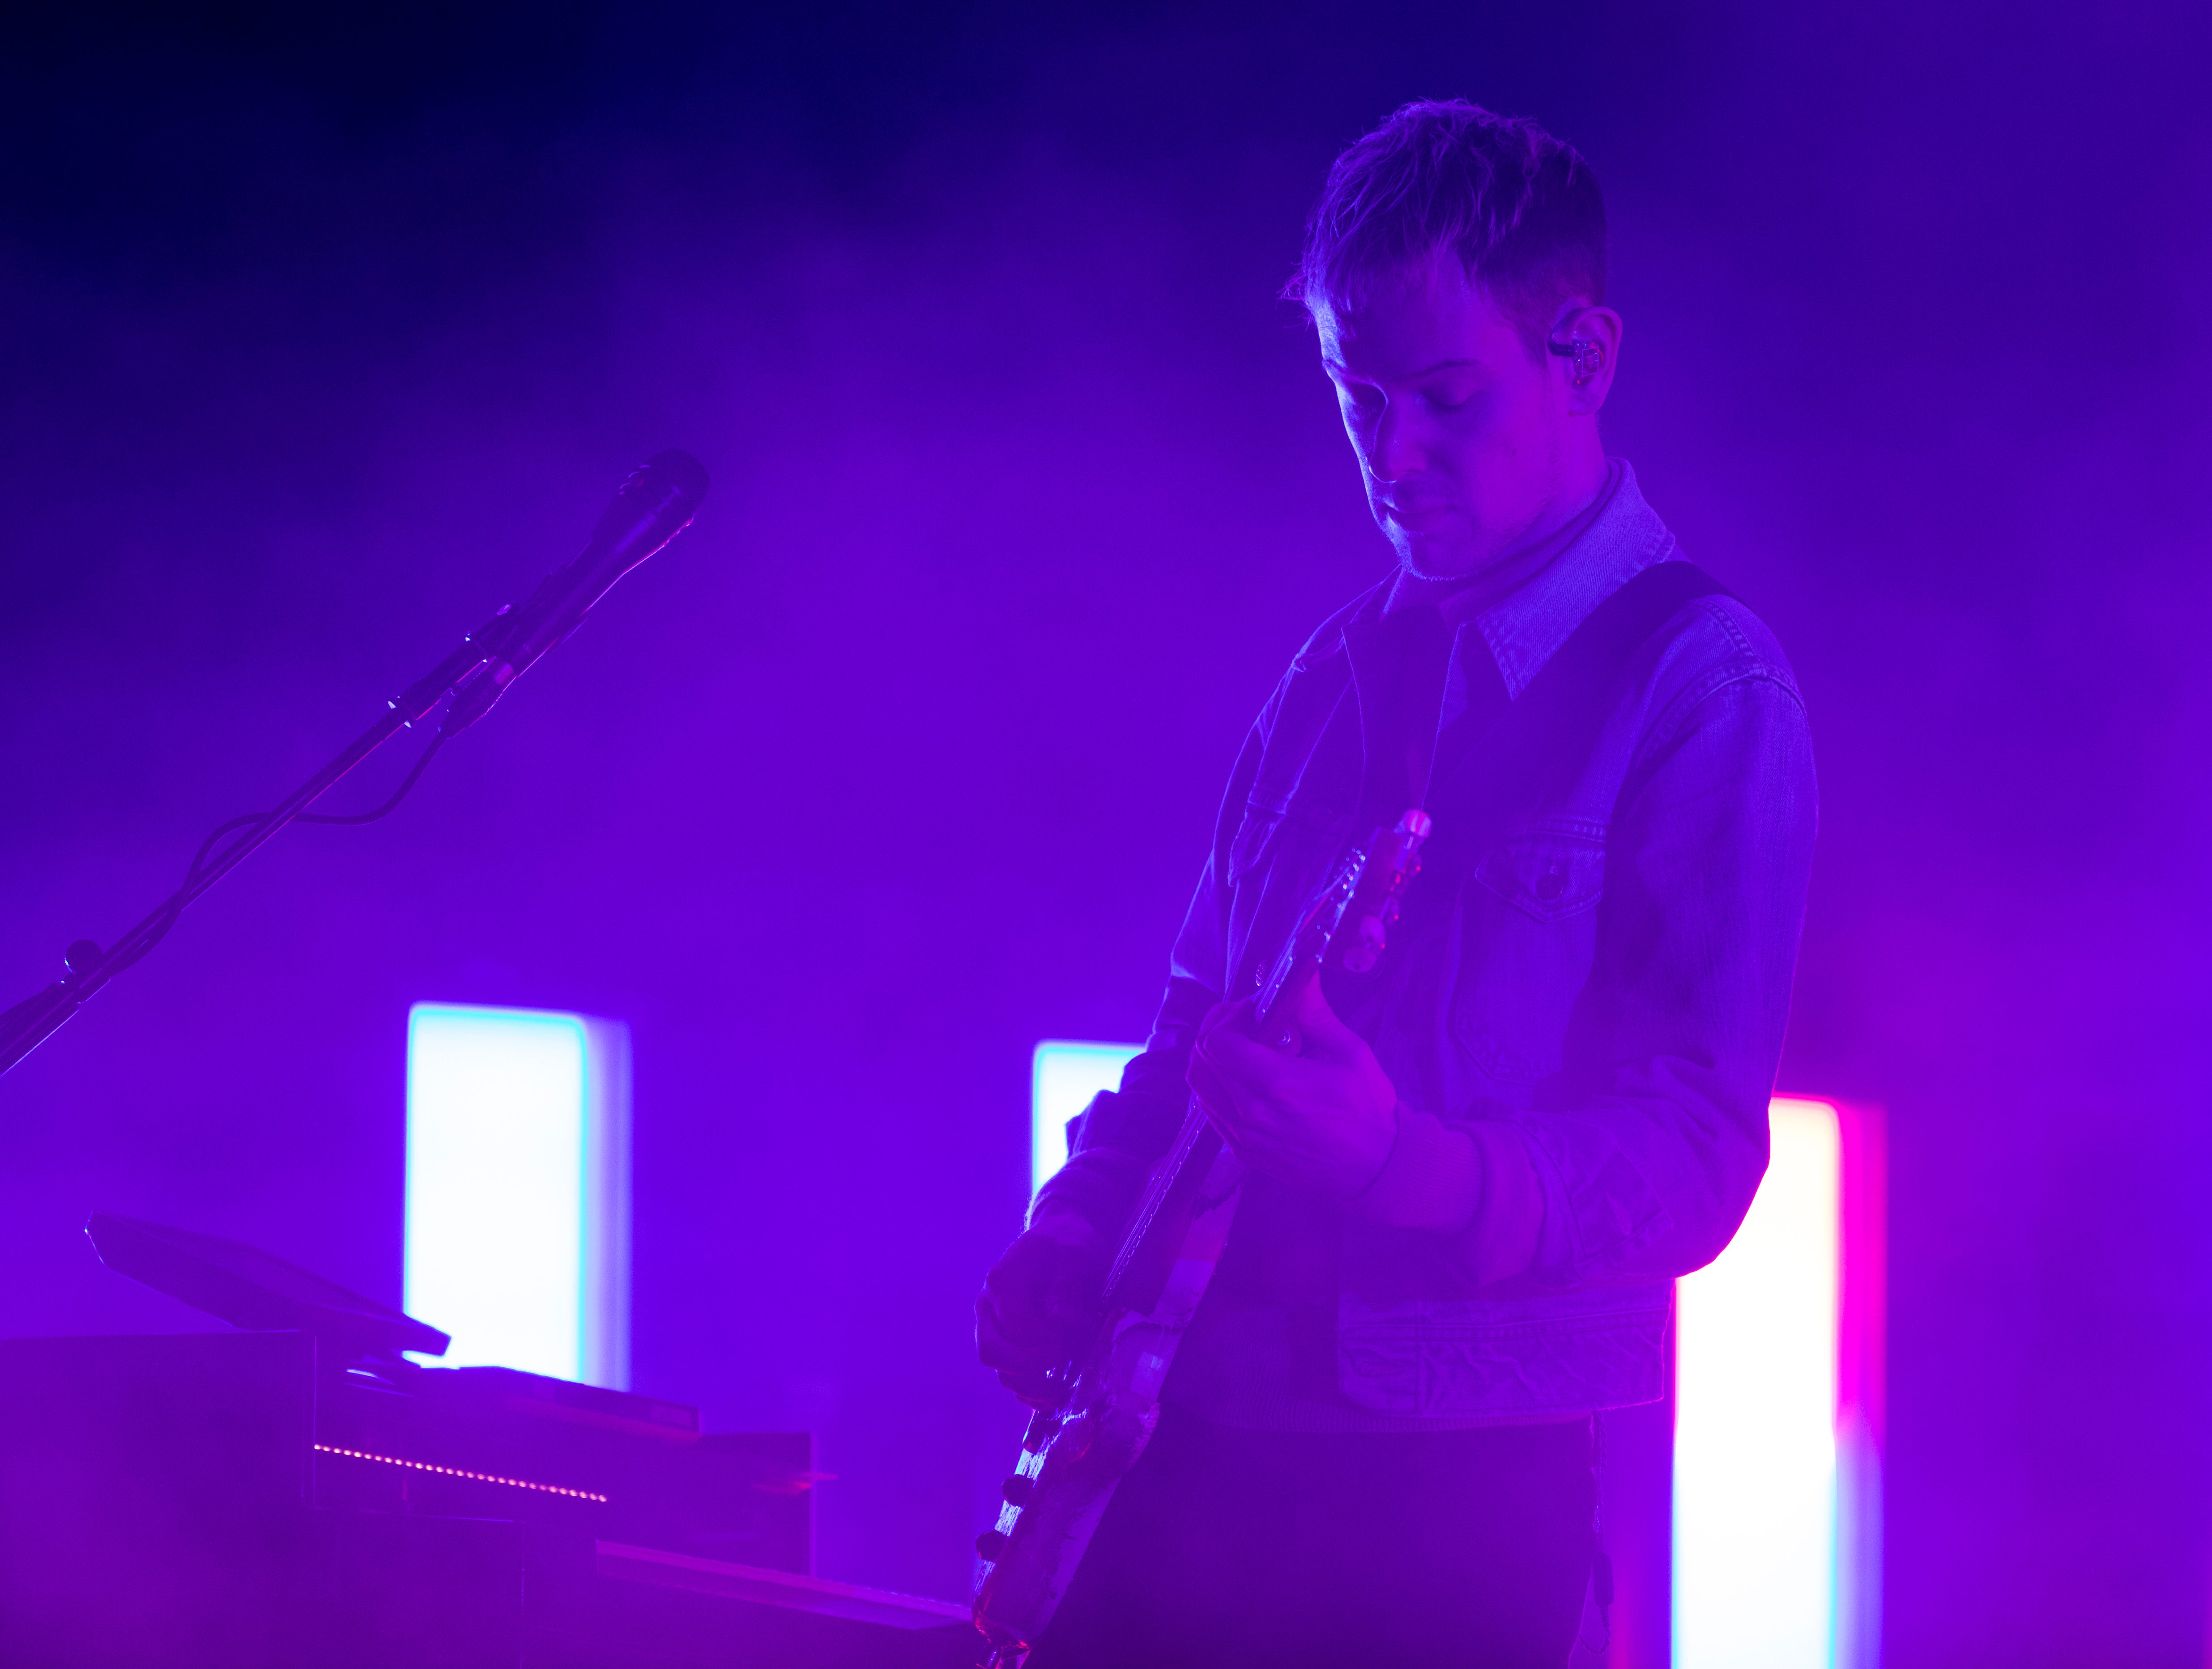 Adam Hann, The 1975 lead guitarist, performs during The 1975 concert at the PNC Pavilion on Sunday, May 12, 2019 in Cincinnati.